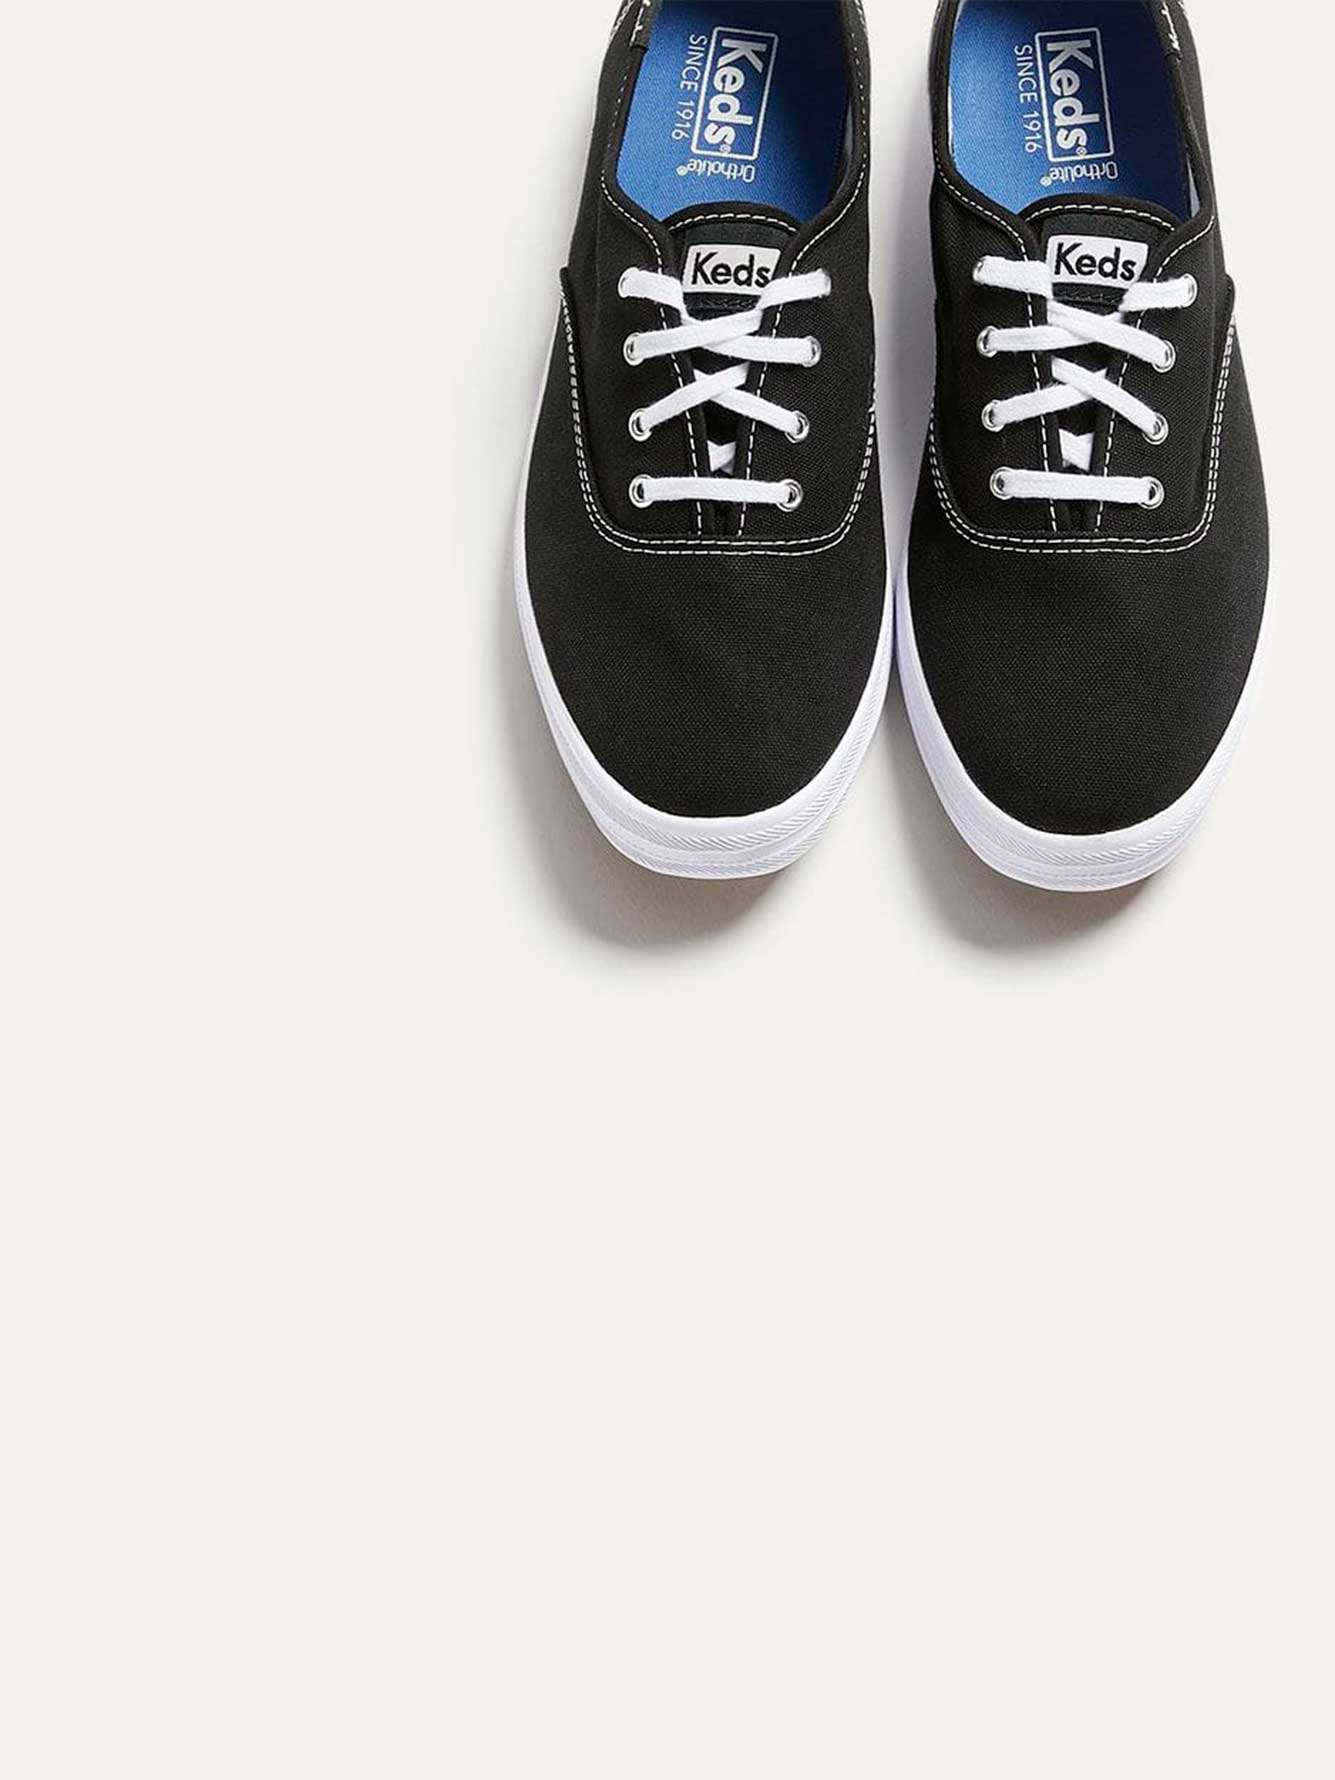 Wide Champion Oxford Canvas Shoes - Keds